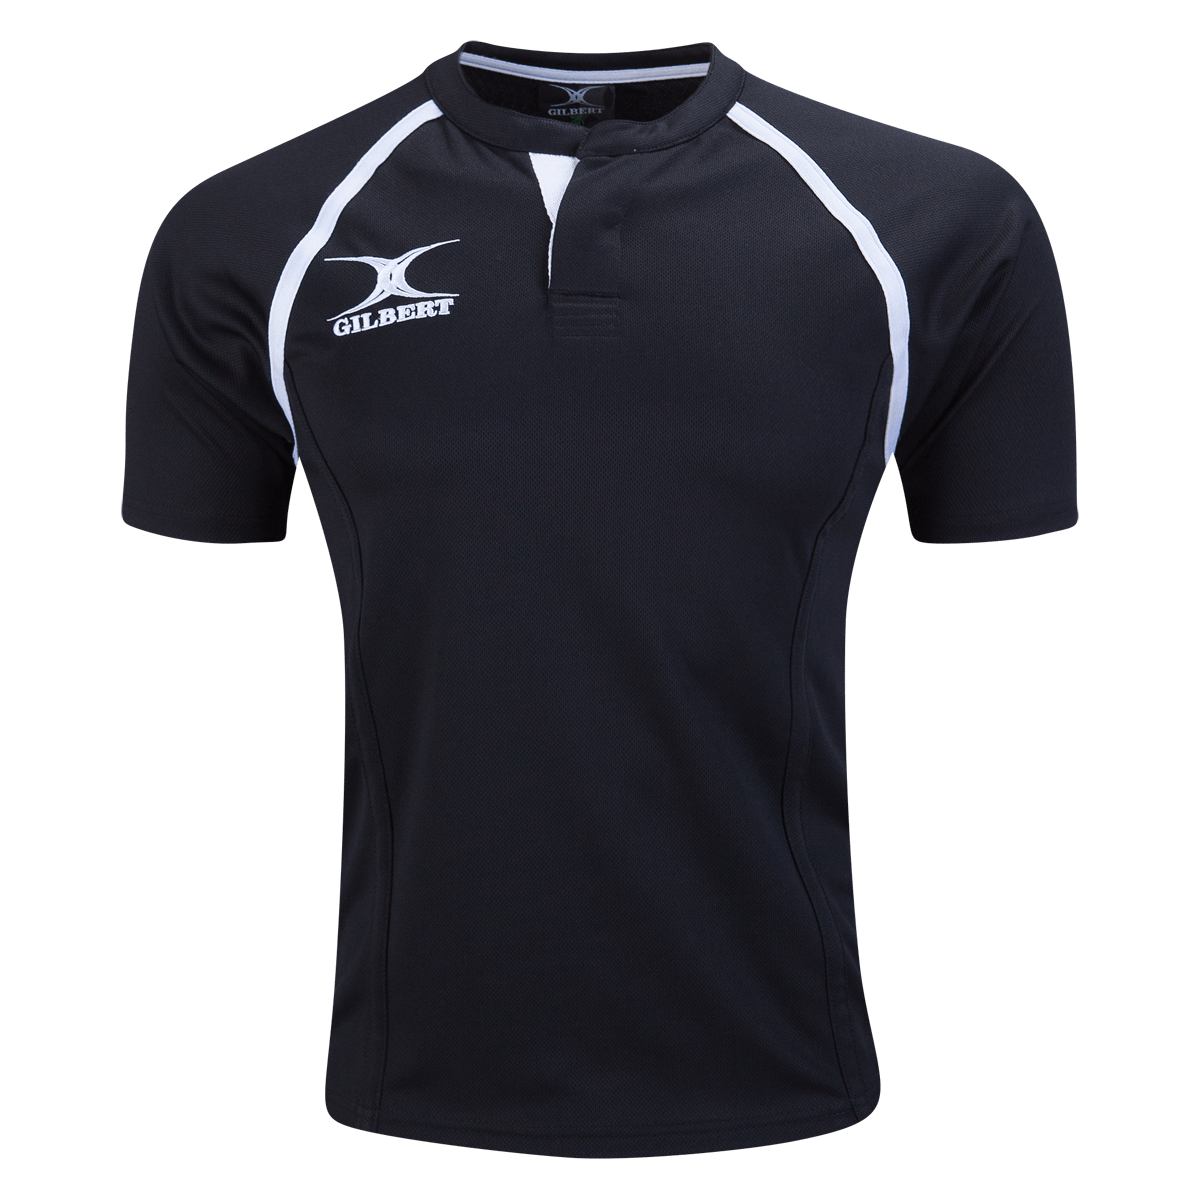 Gilbert Black Xact Premier Rugby Jersey With White Gilbert Logo